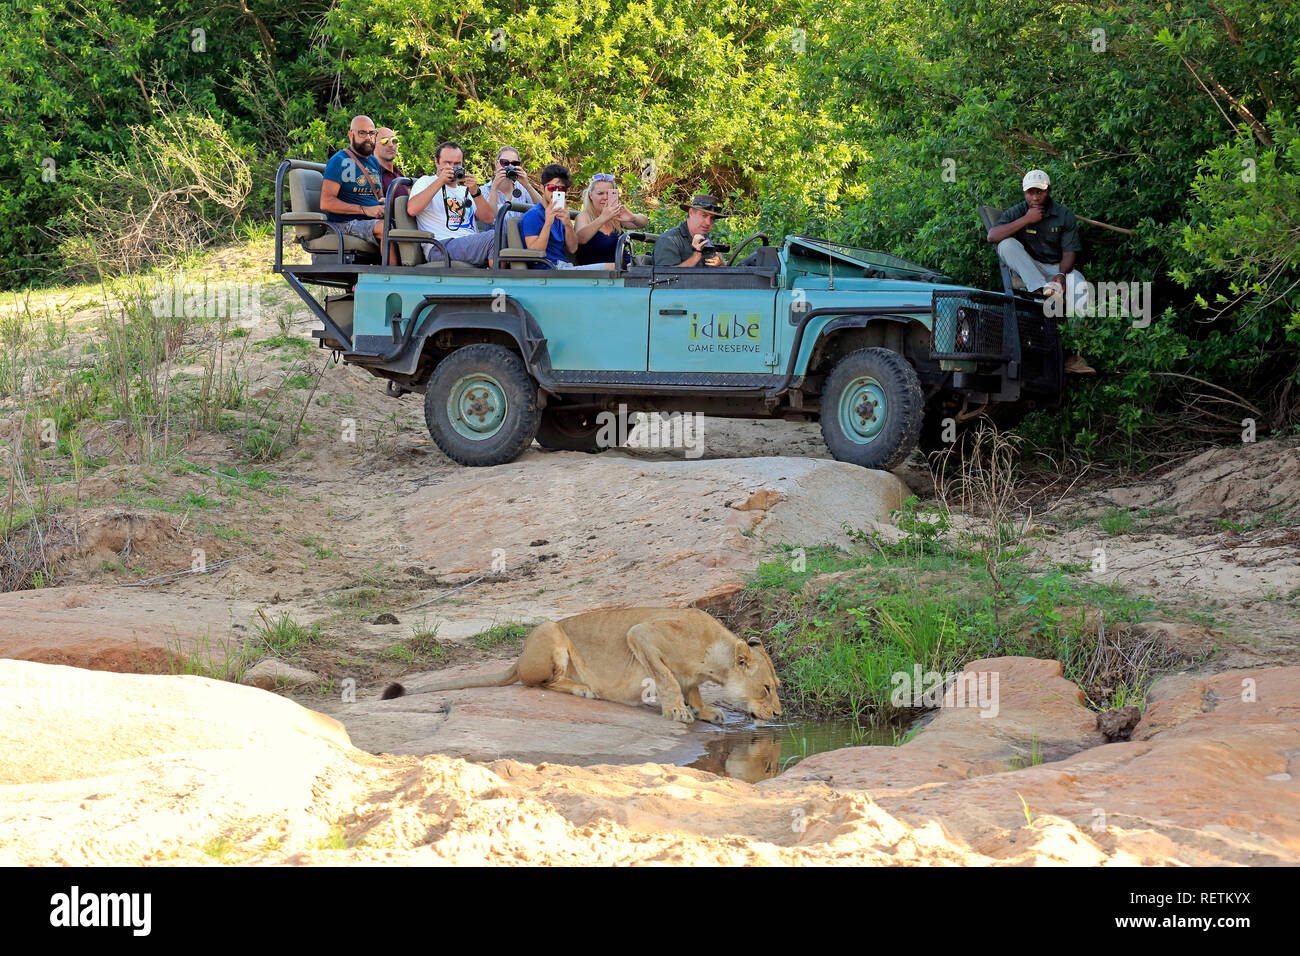 Safari vehicle, Private Game drive with tourists in Safari Vehicle, Sabi Sand Game Reserve, Kruger Nationalpark,South Africa, Africa Stock Photo